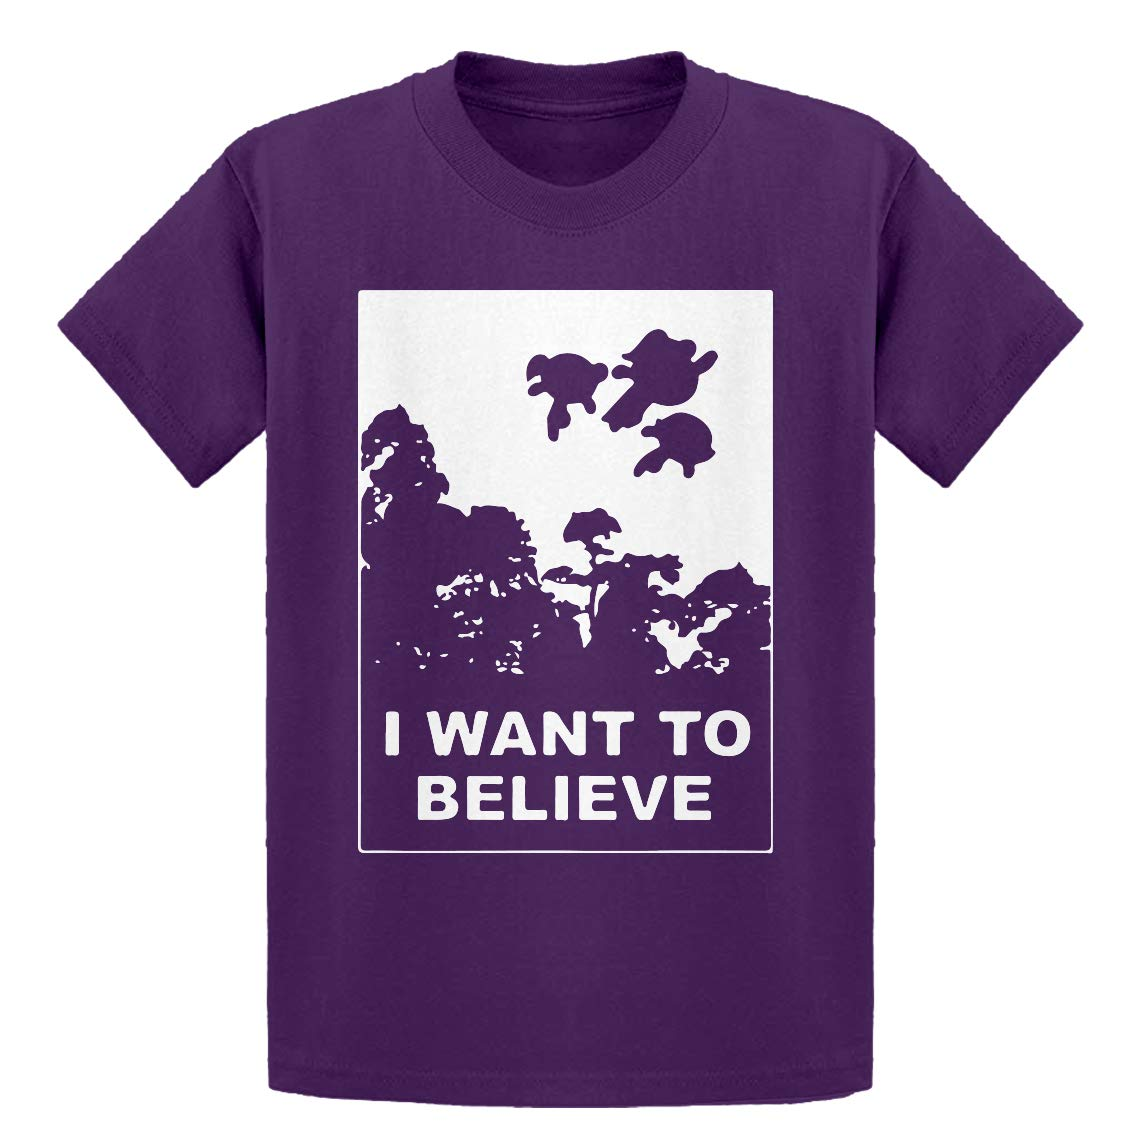 Indica Plateau Youth I Want to Believe Super Girls Kids T-Shirt